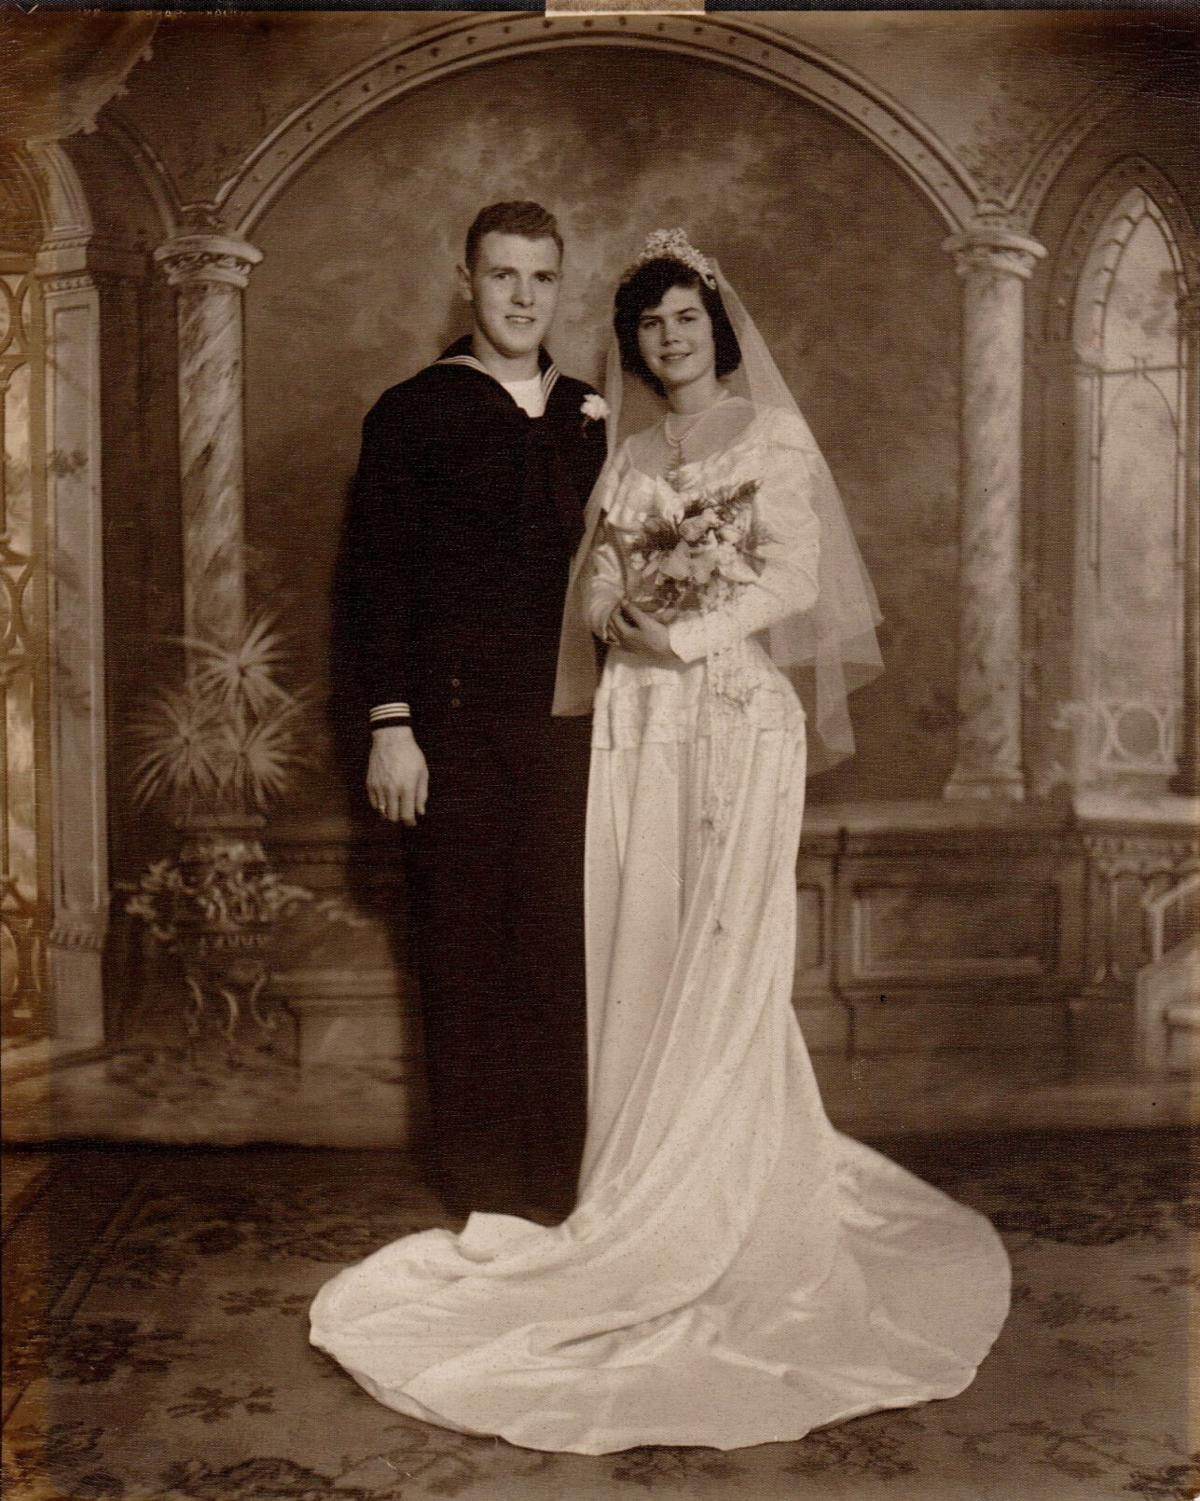 Mr. and Mrs. Frederick D. LaClair, 70 years